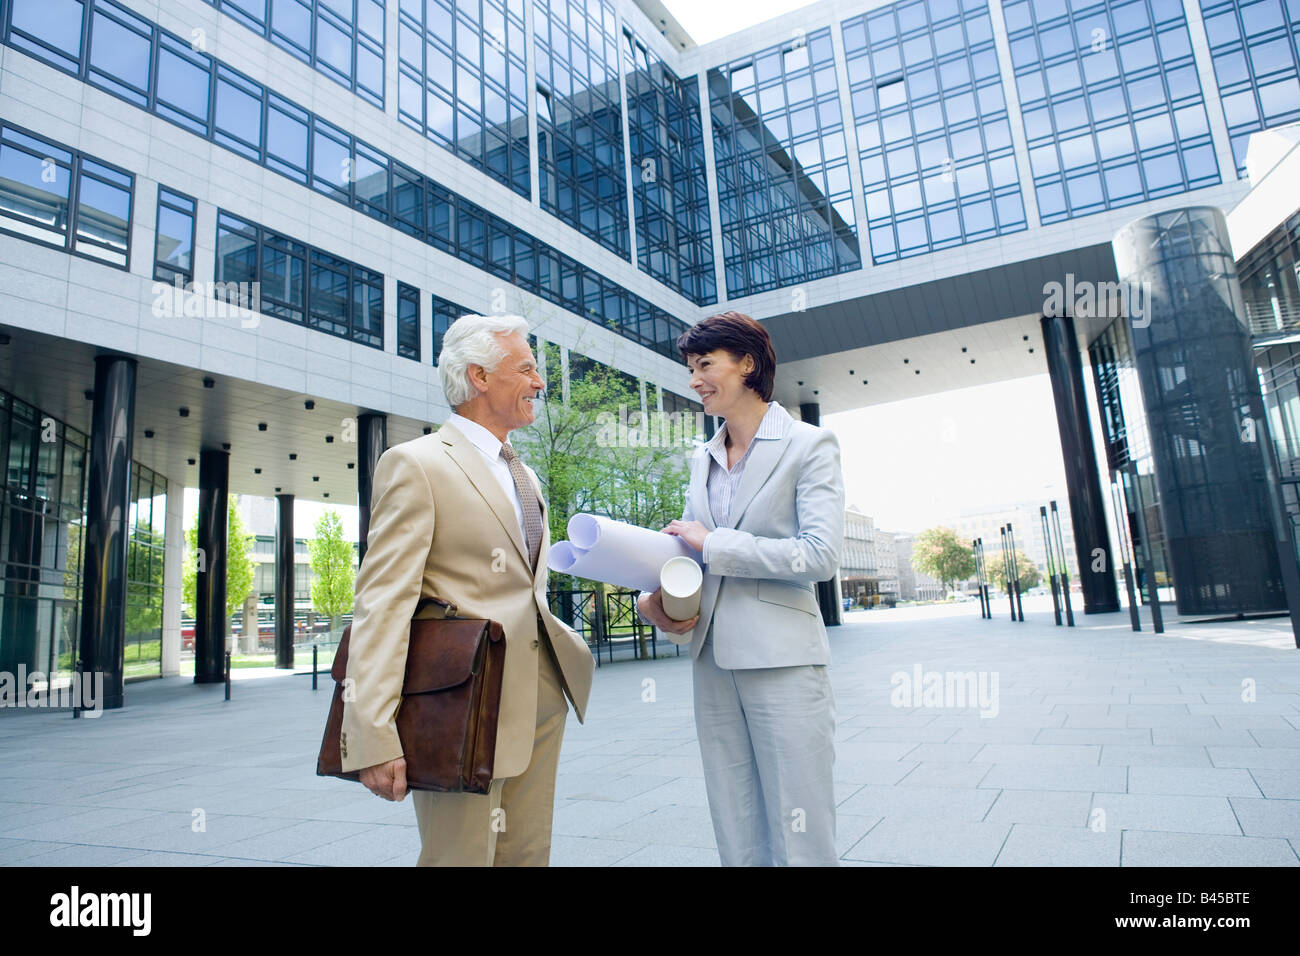 Germany, Baden Württemberg, Stuttgart, Business man and Business woman - Stock Image